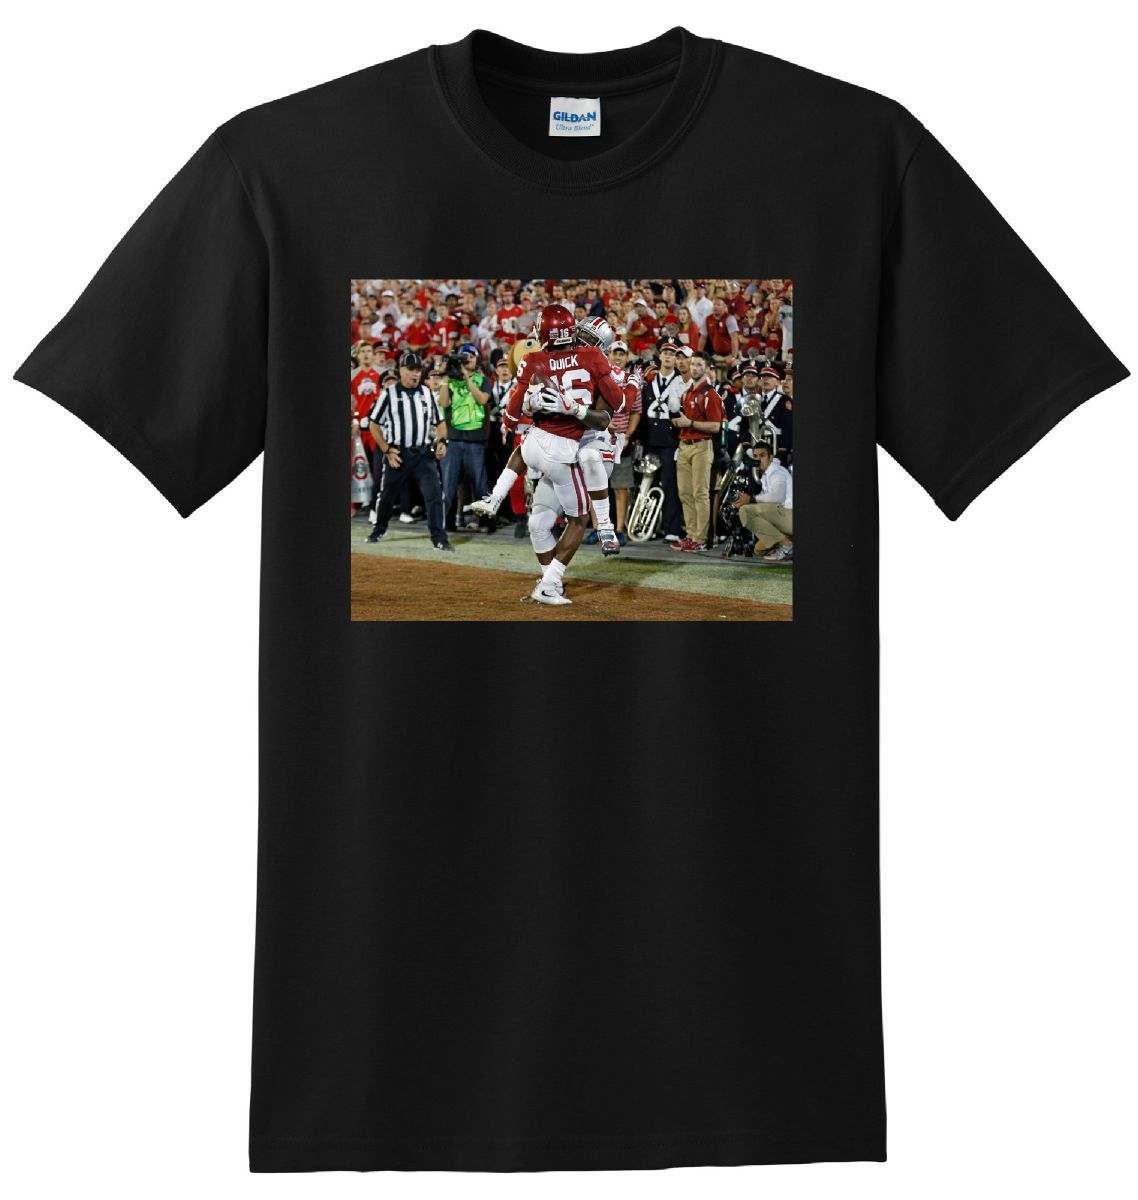 NOAH BROWN T SHIRT Ohio State Footballer Catch Photo Tee New 2018 Summer Style T-Shirt 100% Cotton Straight O-Neck Short Sleeve image